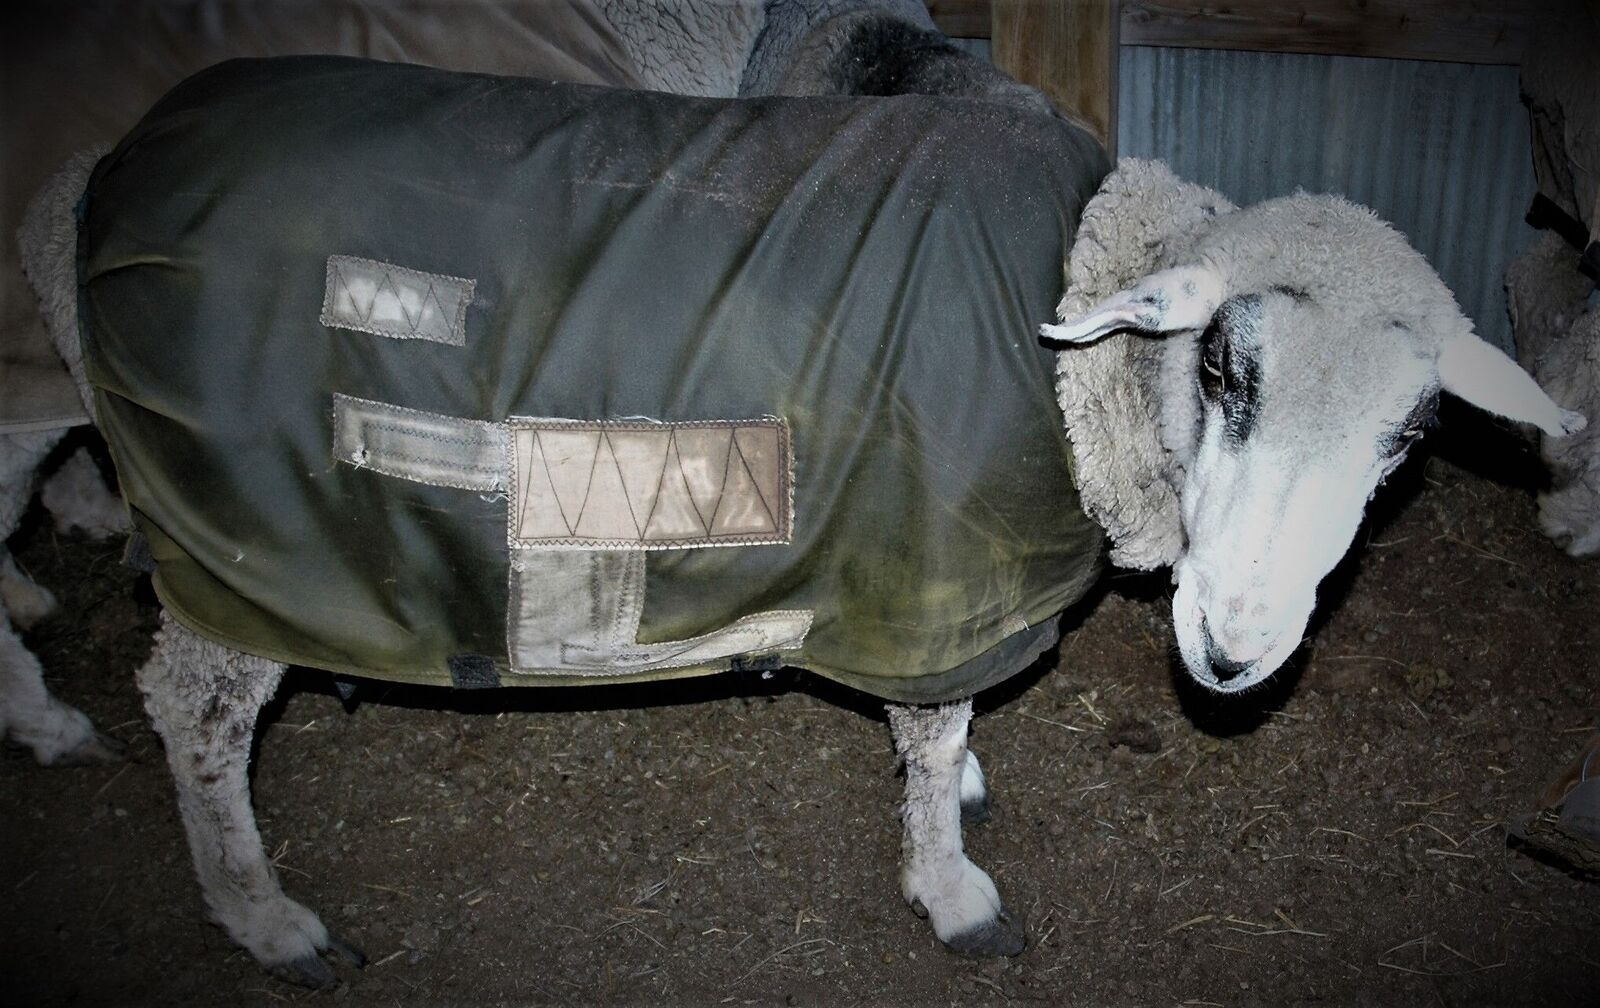 Sheep in patched jacket.